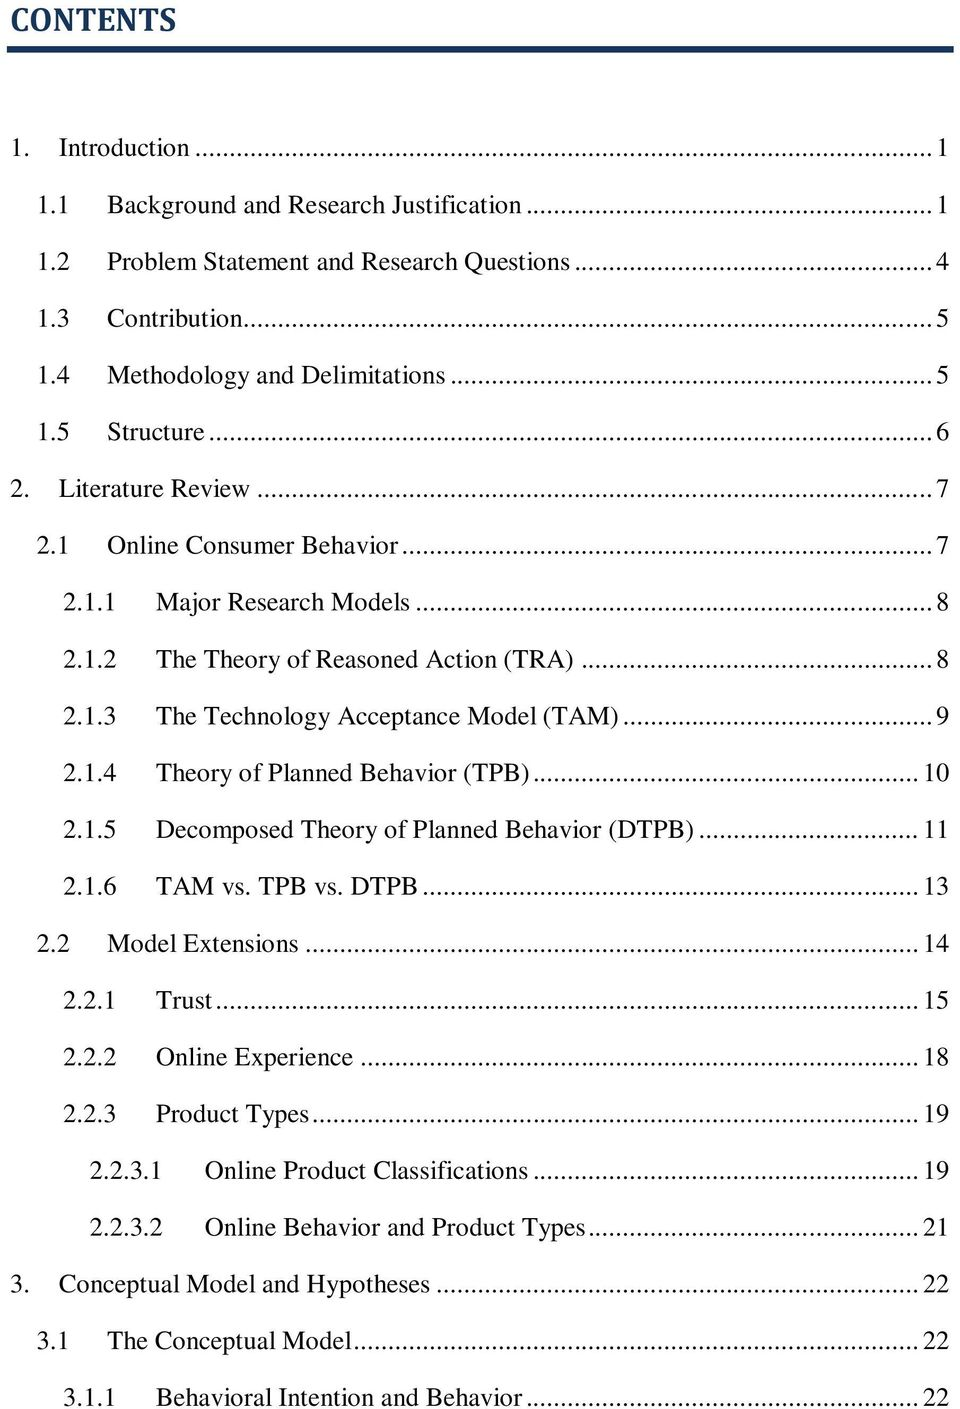 .. 10 2.1.5 Decomposed Theory of Planned Behavior (DTPB)... 11 2.1.6 TAM vs. TPB vs. DTPB... 13 2.2 Model Extensions... 14 2.2.1 Trust... 15 2.2.2 Online Experience... 18 2.2.3 Product Types... 19 2.